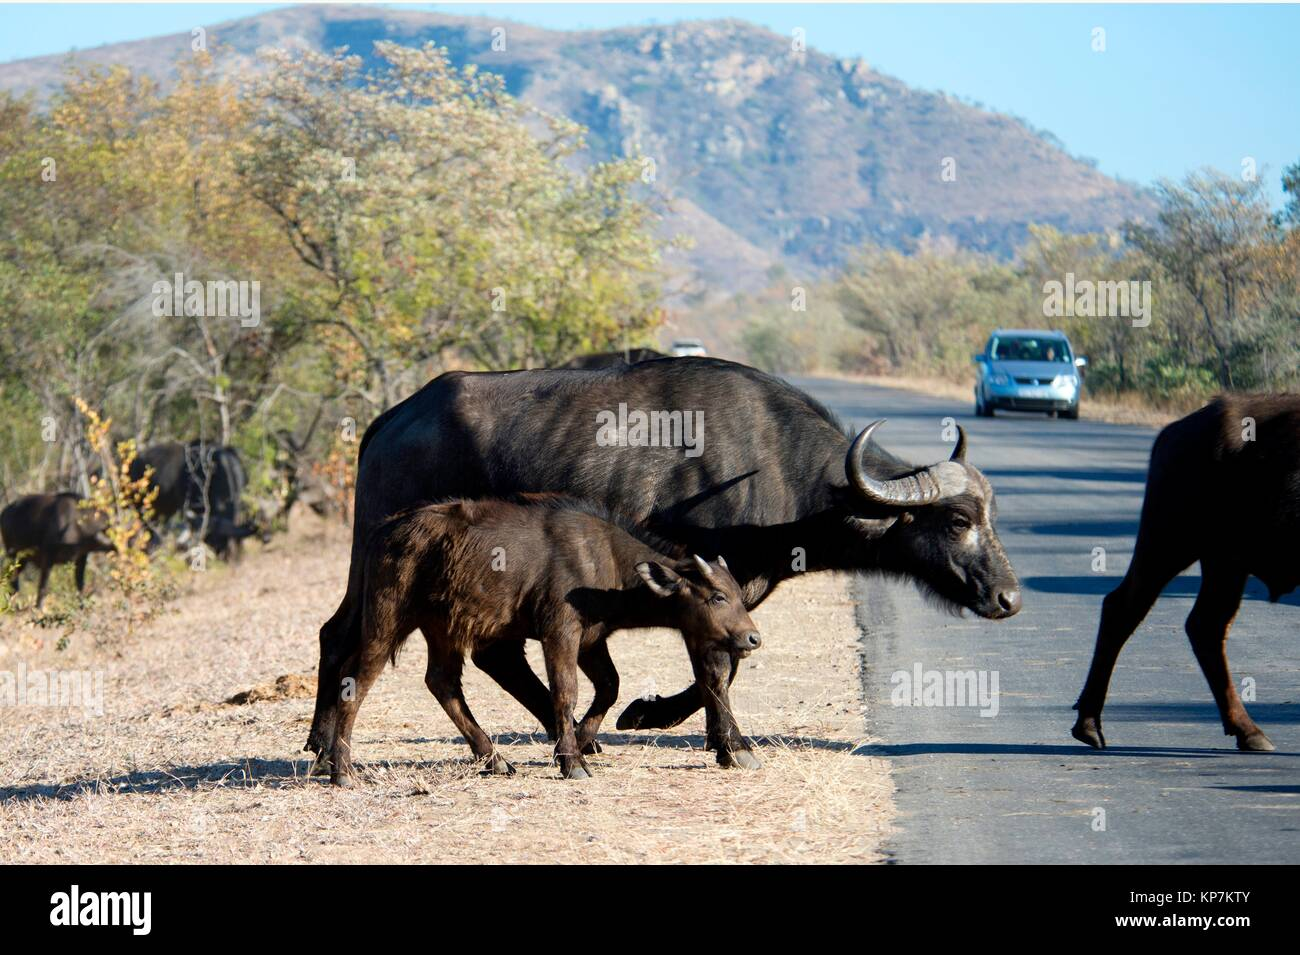 Buffalo (Syncerus caffer) juvenile crossing road, Kruger National Park, Transvaal, South Africa. - Stock Image